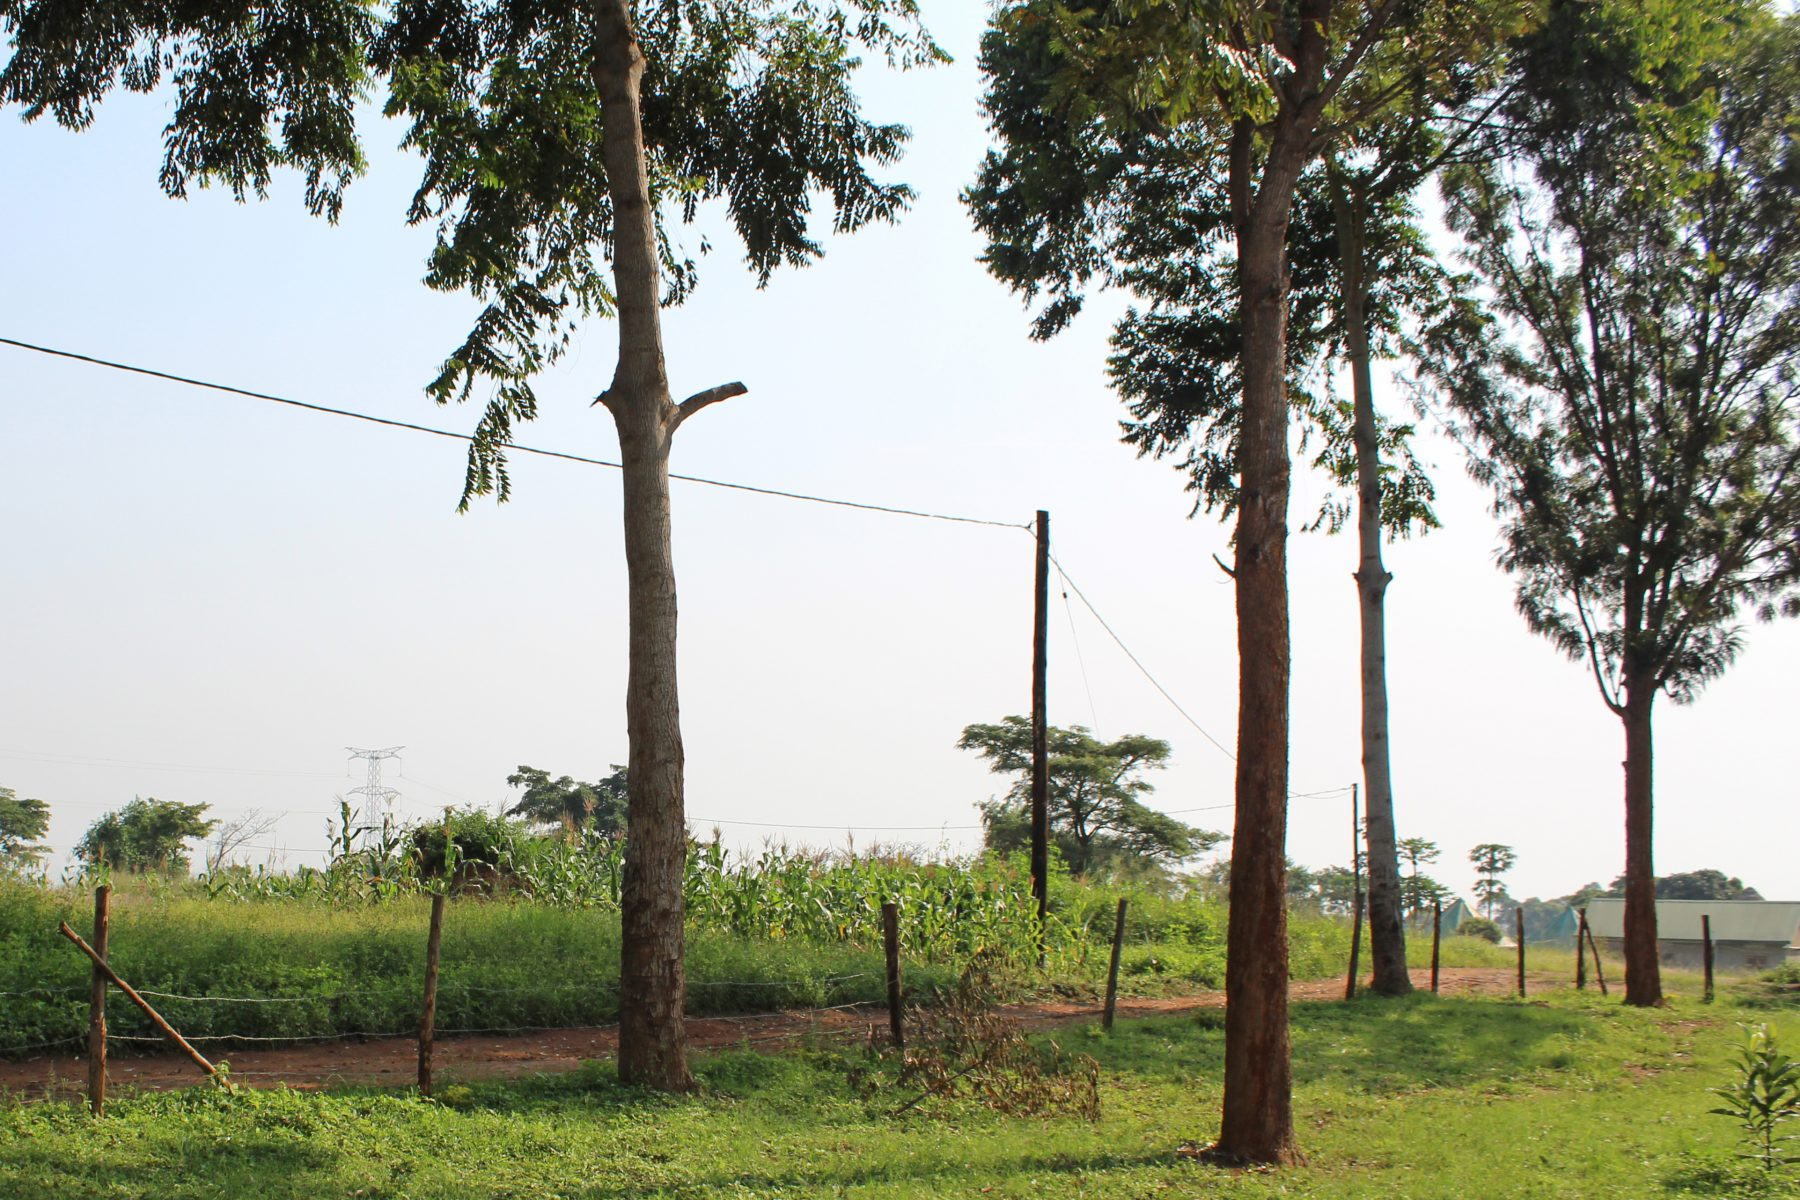 Tall Trees, Road, and Maize Crop Seen from the Church Doorway